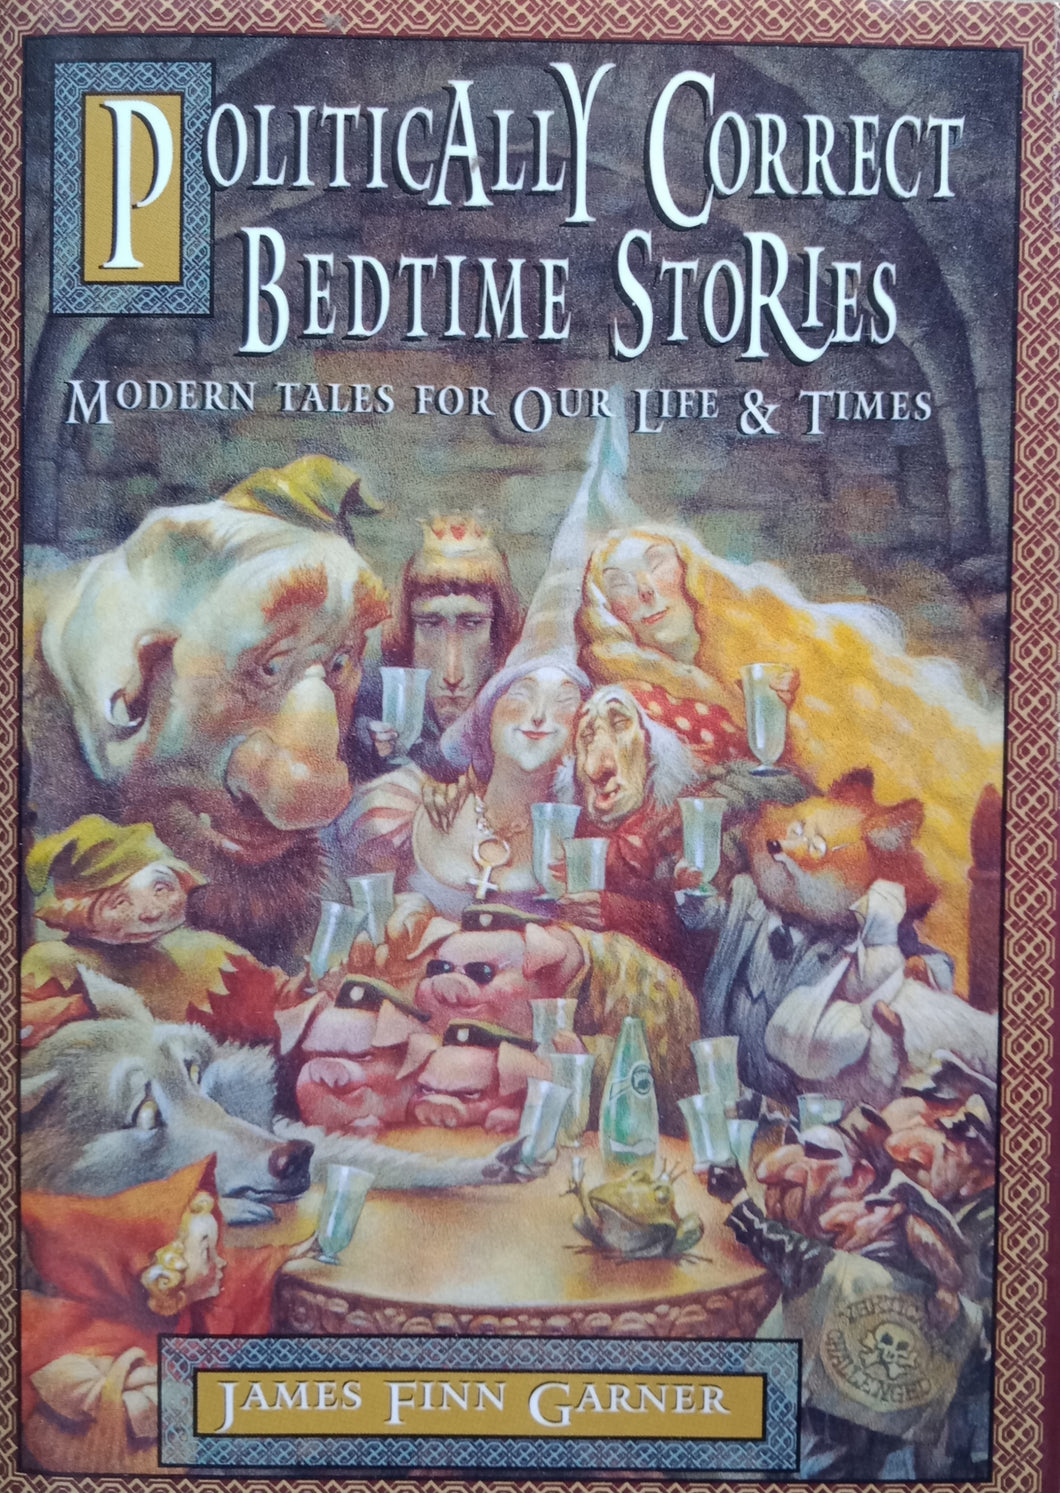 Political Correct Bedtime Stories by James Finn Garner